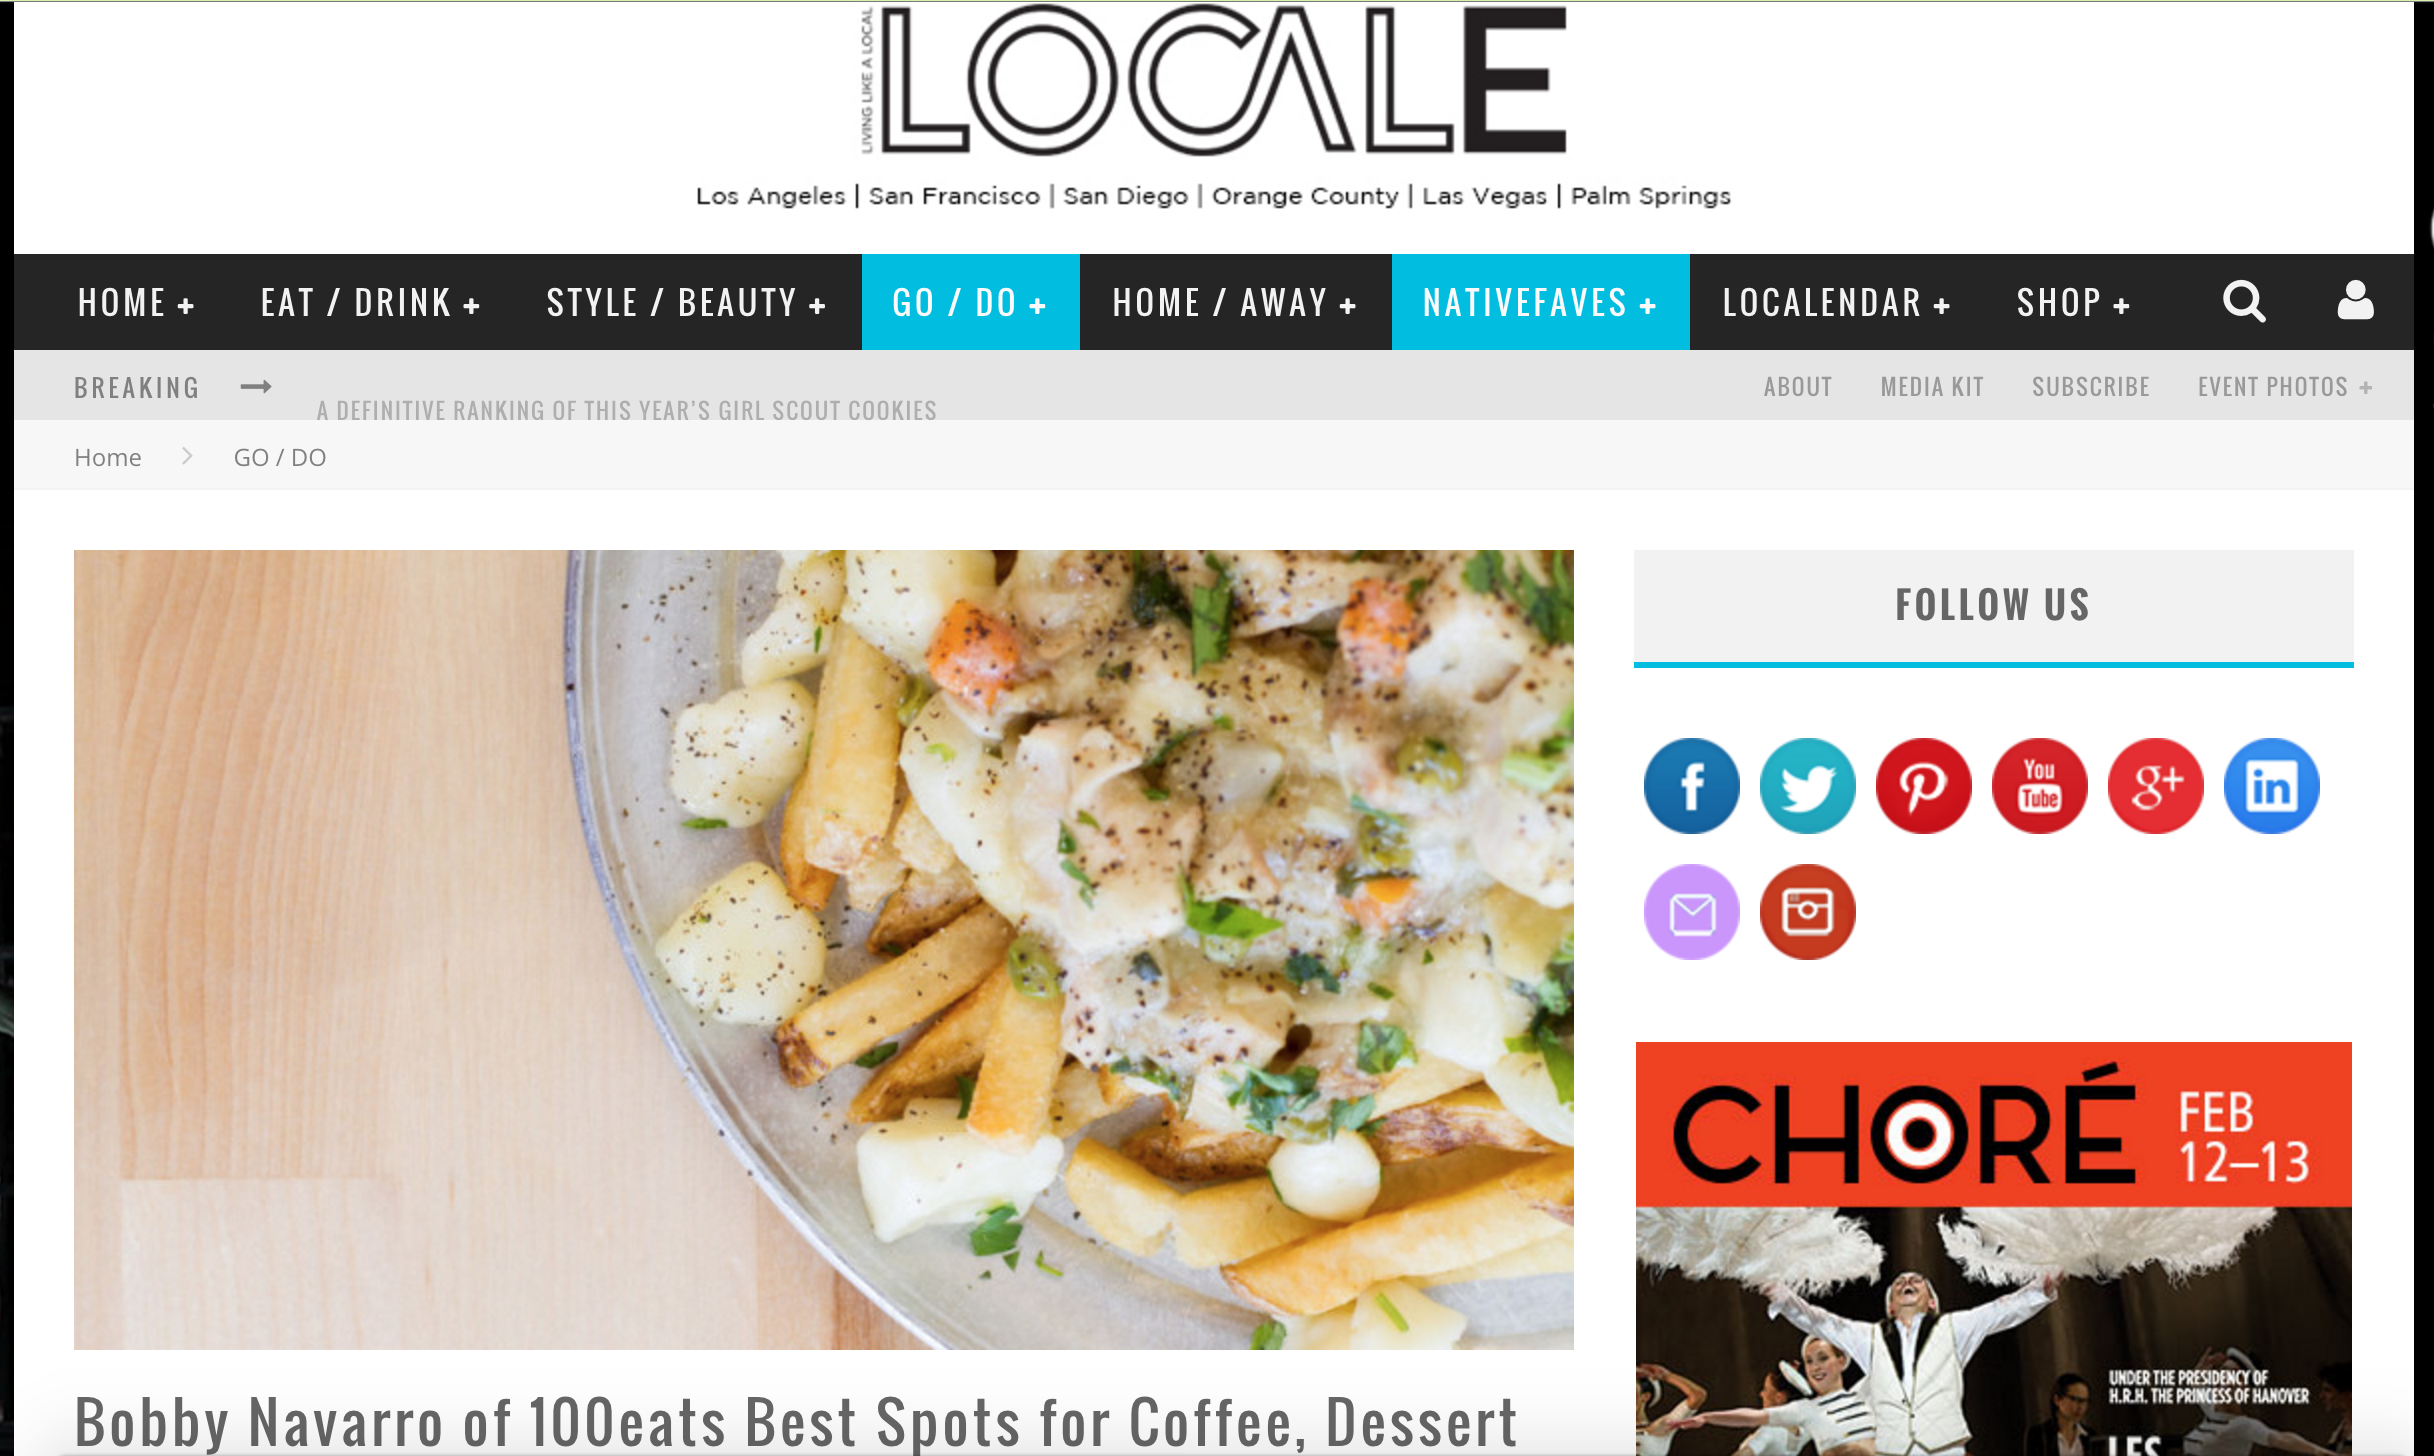 Locale Magazine Article highlights Bobby Navarro's typical Sunday night at Cal Shabu Costa Mesa